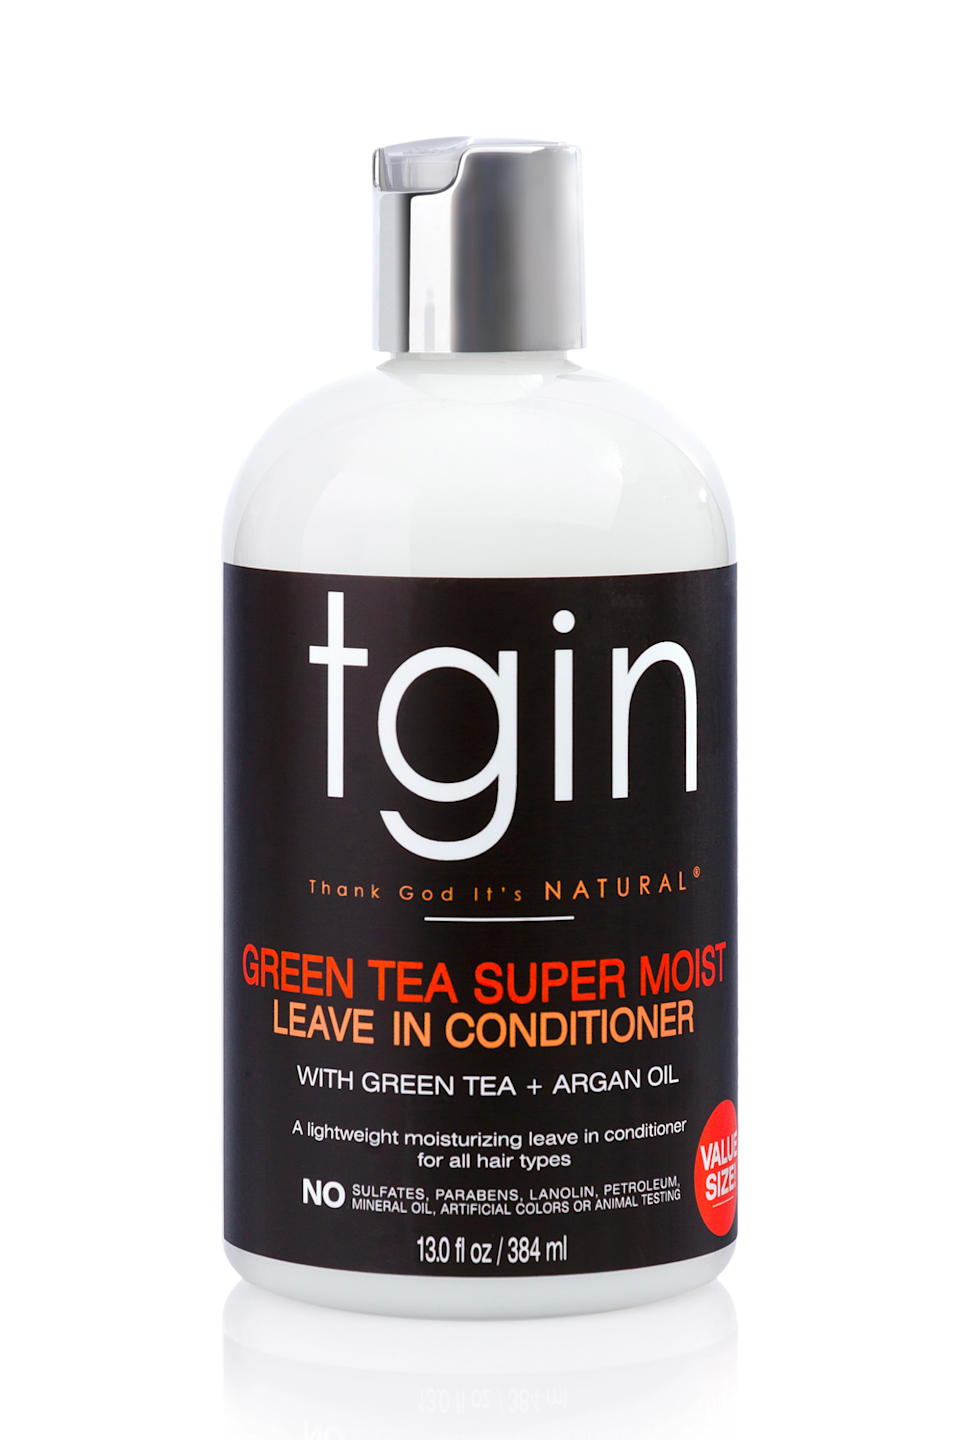 """<p><strong>tgin</strong></p><p>ulta.com</p><p><strong>$14.99</strong></p><p><a href=""""https://go.redirectingat.com?id=74968X1596630&url=https%3A%2F%2Fwww.ulta.com%2Fgreen-tea-super-moist-leave-in-conditioner-13oz%3FproductId%3Dpimprod2005382&sref=https%3A%2F%2Fwww.cosmopolitan.com%2Fstyle-beauty%2Fbeauty%2Fg35265911%2F4a-hair-products%2F"""" rel=""""nofollow noopener"""" target=""""_blank"""" data-ylk=""""slk:Shop Now"""" class=""""link rapid-noclick-resp"""">Shop Now</a></p><p>For 4a hair types that are on the dryer side, opt for this <a href=""""https://www.cosmopolitan.com/style-beauty/beauty/g27345497/best-leave-in-conditioners-curly-hair/"""" rel=""""nofollow noopener"""" target=""""_blank"""" data-ylk=""""slk:leave-in"""" class=""""link rapid-noclick-resp"""">leave-in</a> conditioner <em><em>before </em></em>you layer on your curl cream (again: you want to apply your products to soaking wet hair). Even though it's nice and lightweight, the formula is still suuuper hydrating, thanks to <strong>hair-smoothing ingredients like green tea, argan oil, and shea butter</strong>. </p>"""